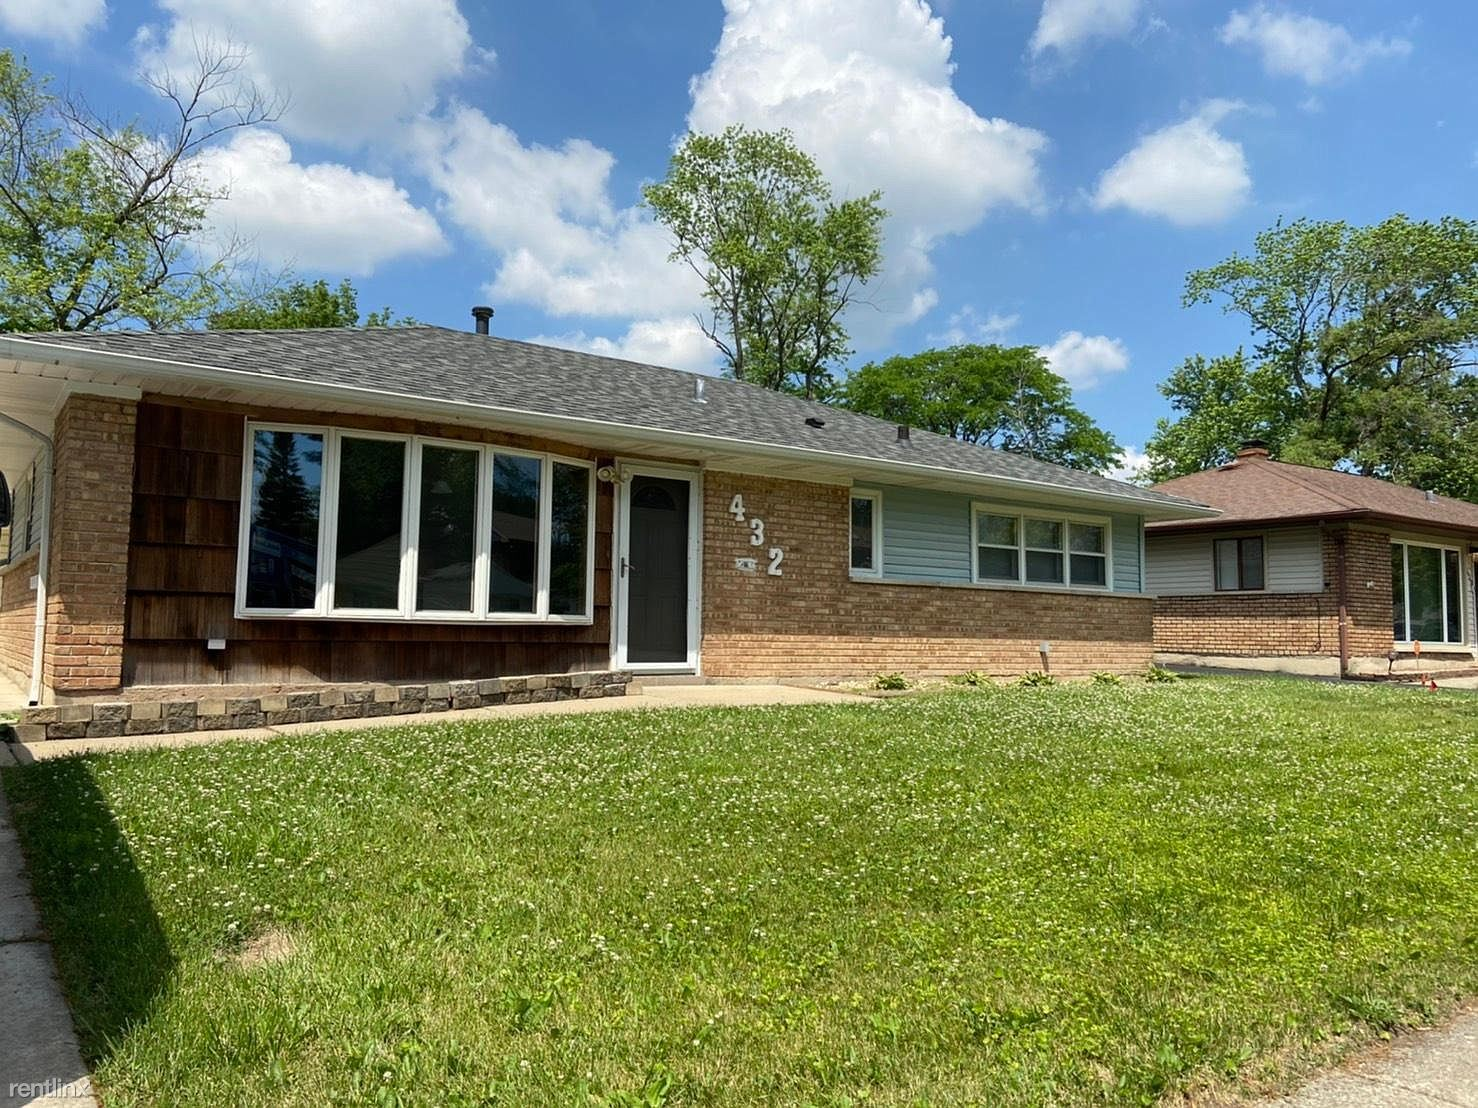 432 Niagara St, Park Forest, IL - 1,300 USD/ month